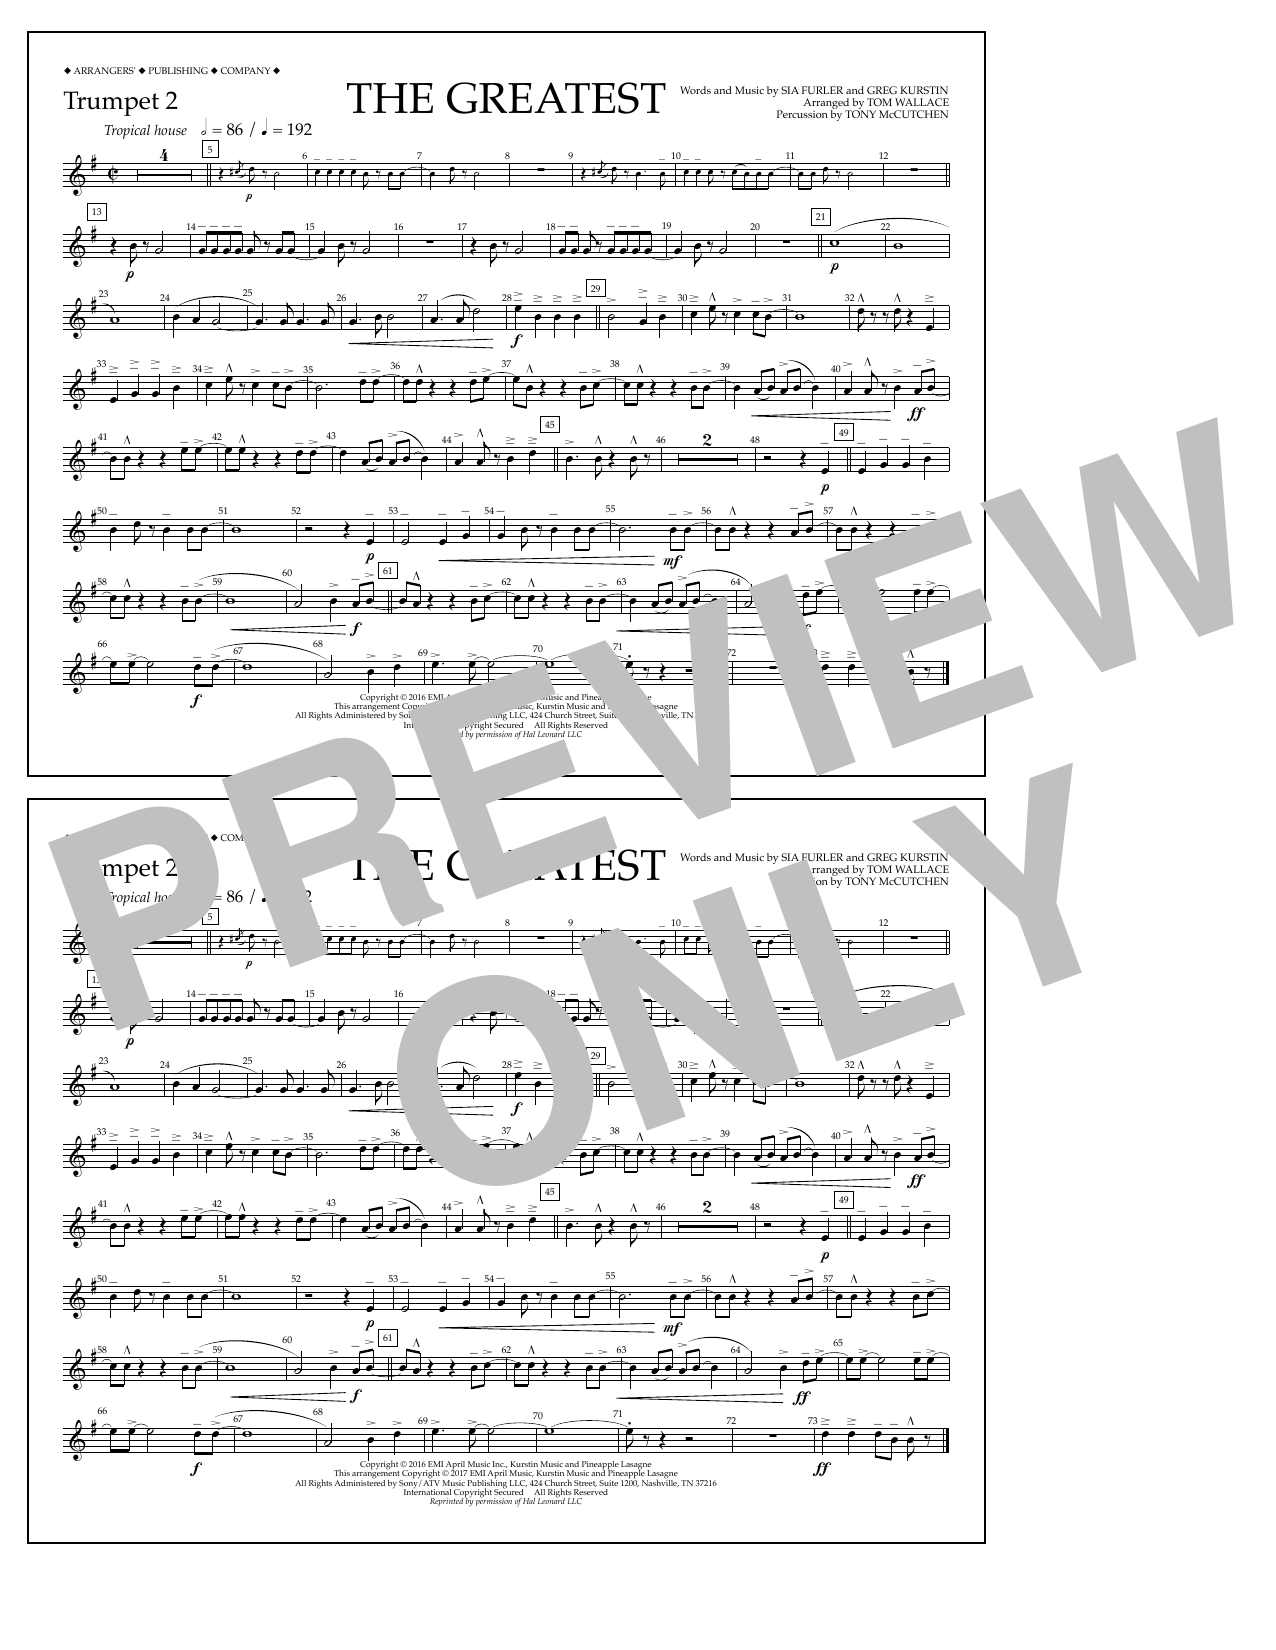 The Greatest - Trumpet 2 Sheet Music